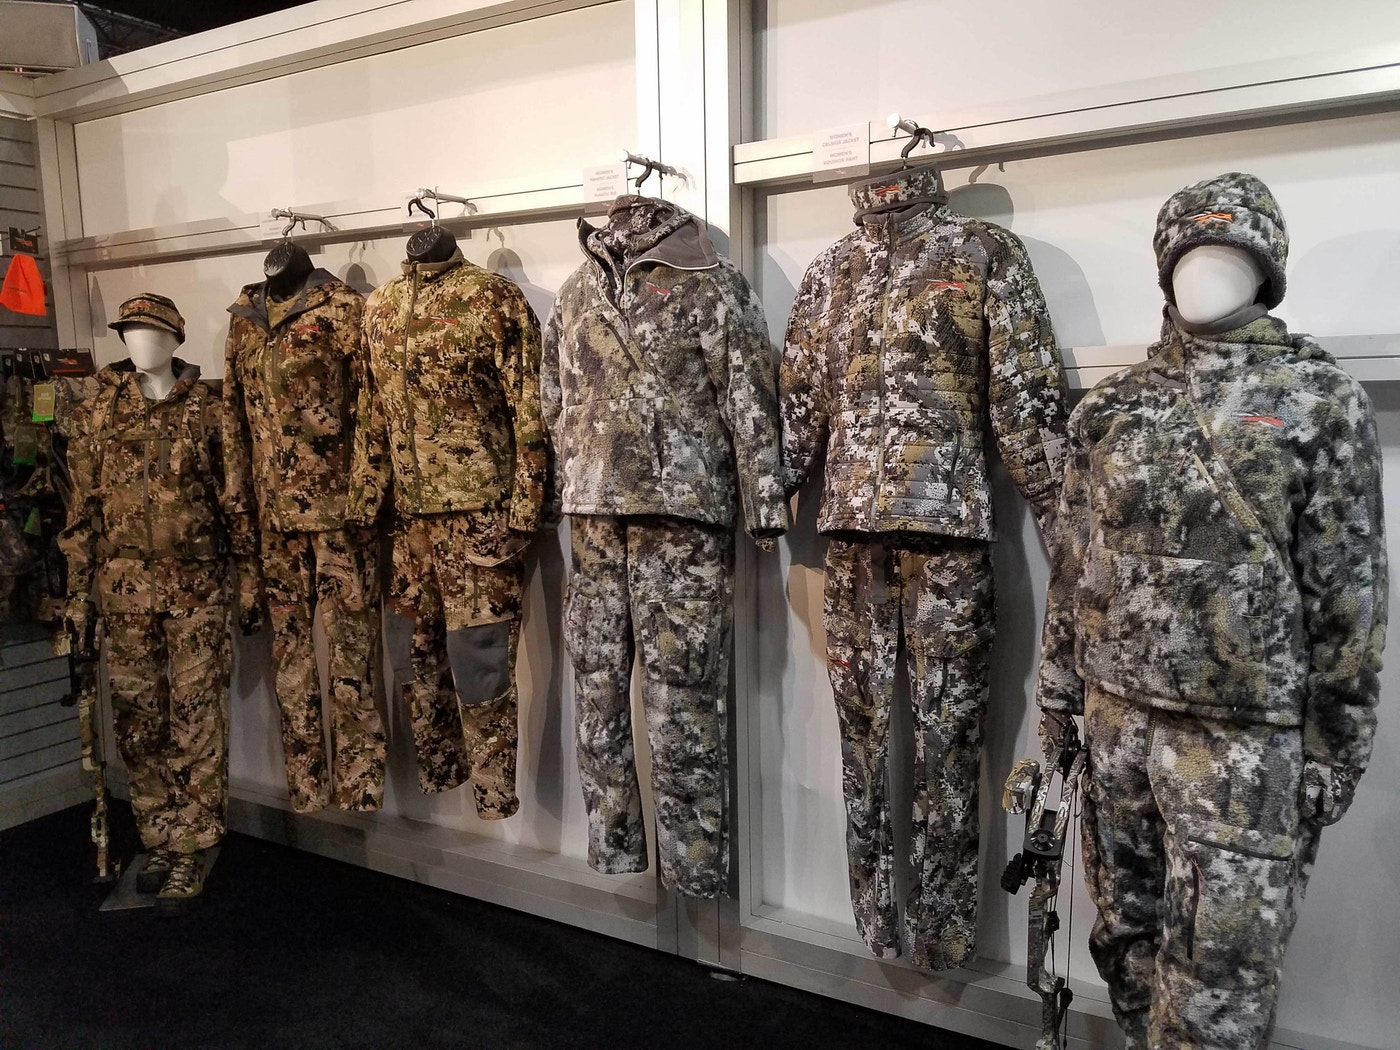 0b2ad4b308bad Sitka Introduces Women's Hunting Clothing | Grand View Outdoors